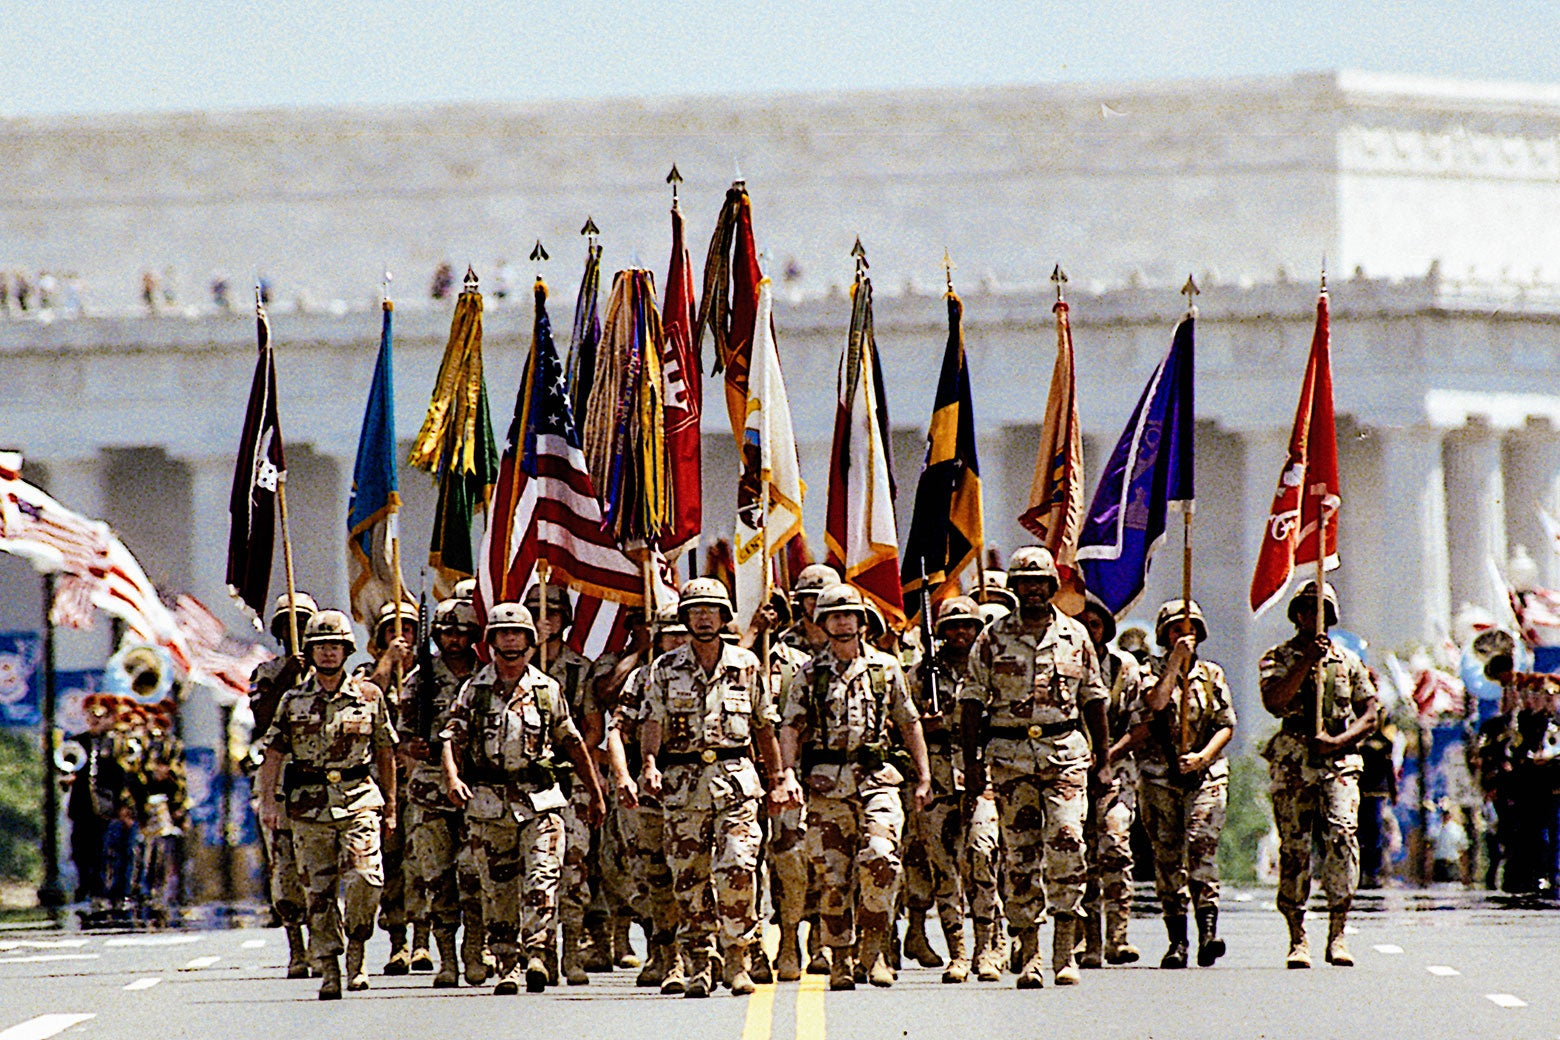 A flag-waving crowd of 200,000 people cheered veterans of Operation Desert Storm as the nation's capital staged its biggest victory celebration since the end of World War II on June 8, 1991.